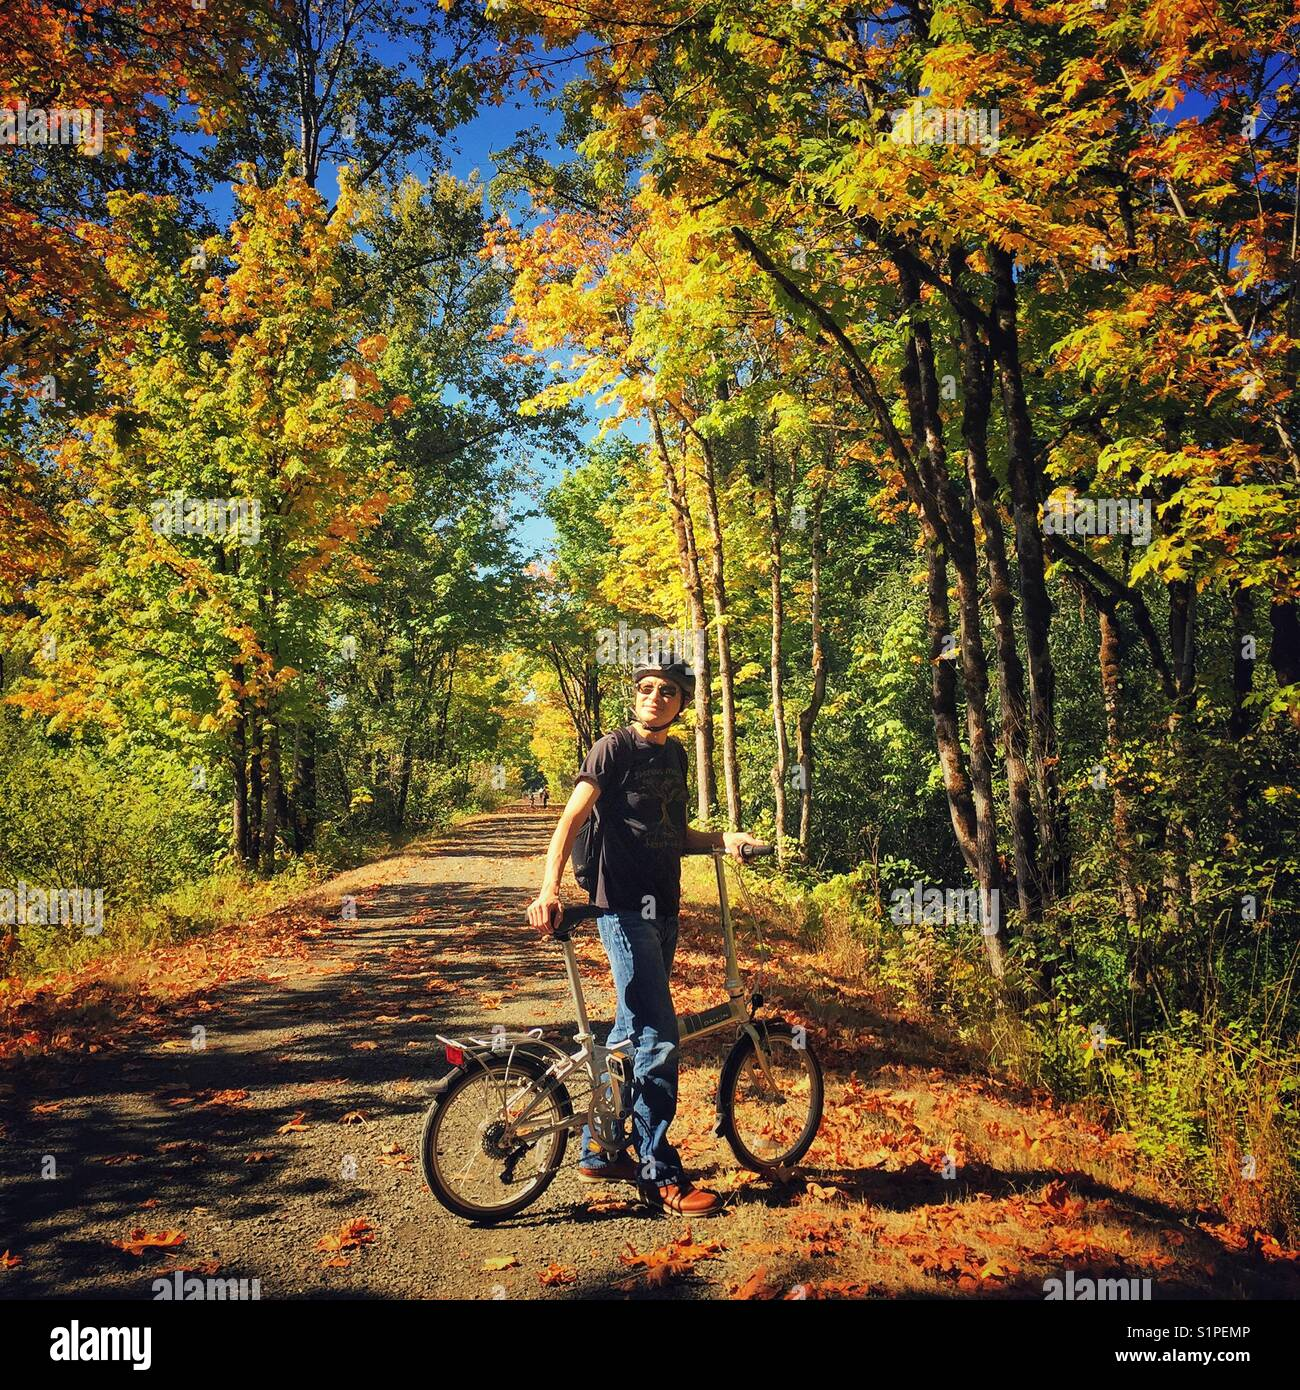 Man stops to rest on a bike trail on a sunny day surrounded by fall foliage on a sunny day - Stock Image